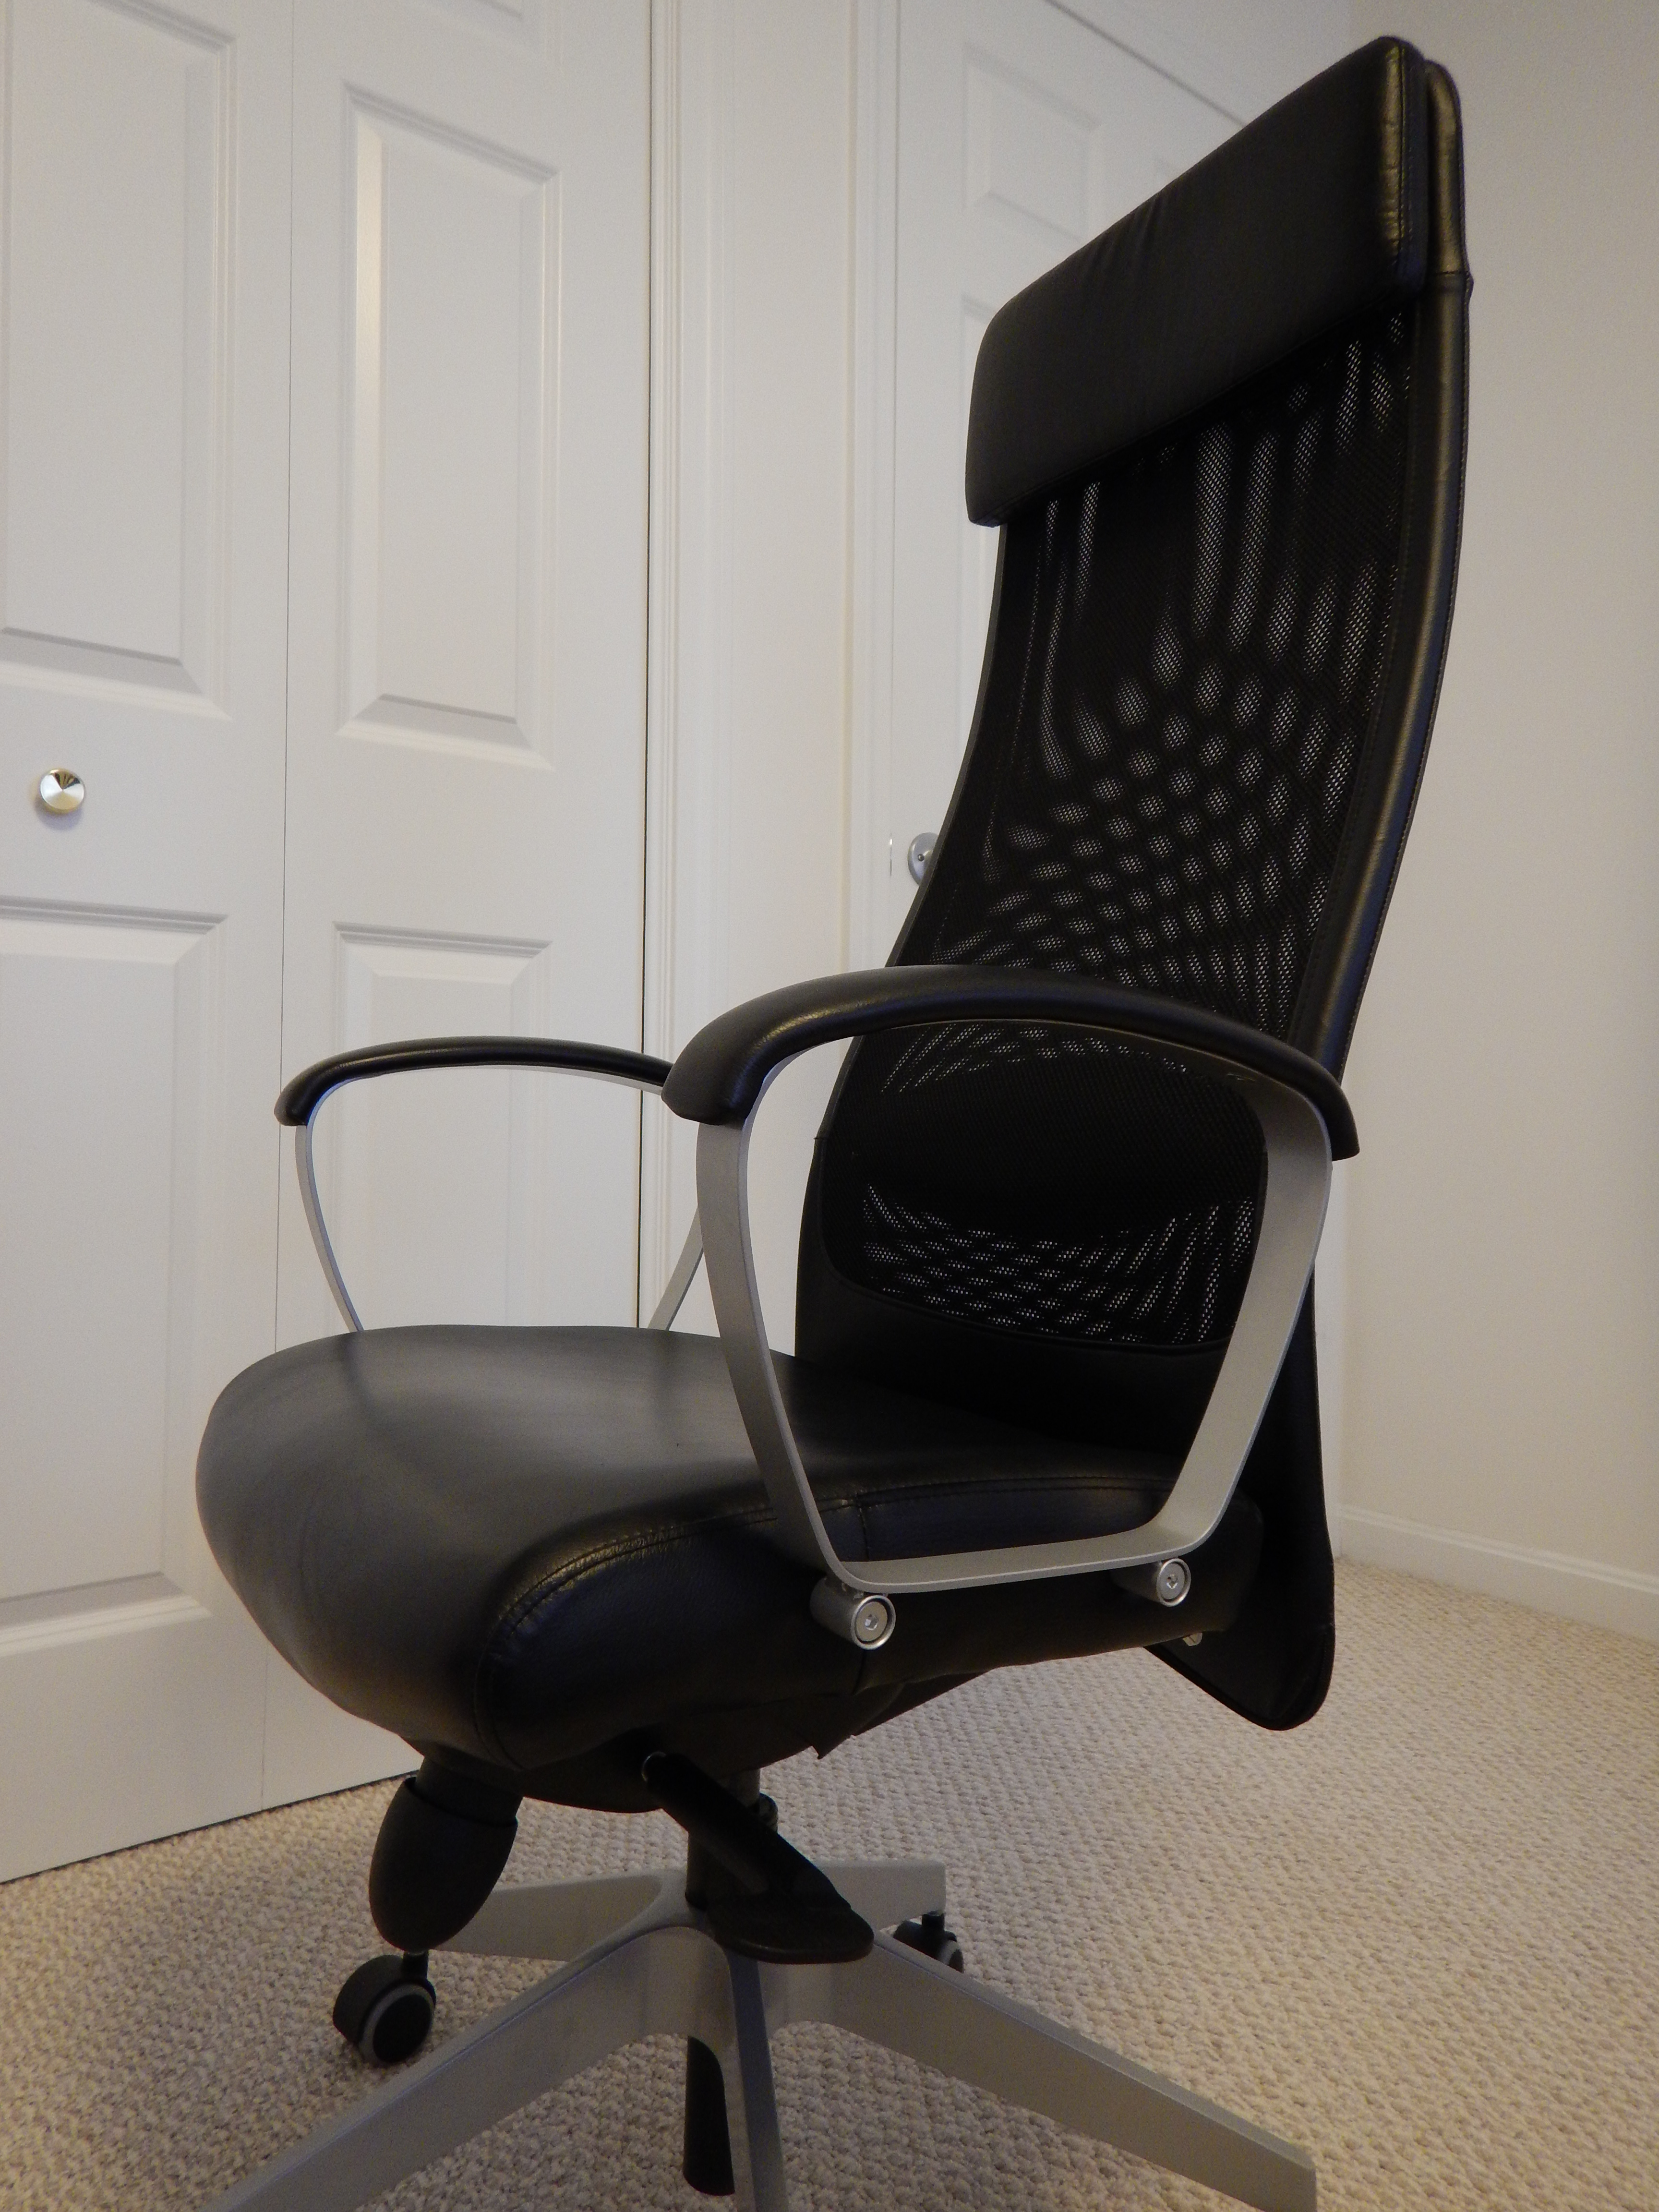 Loanablesikea Markus Office Desk Chair Rental Located In Nottingham Nh